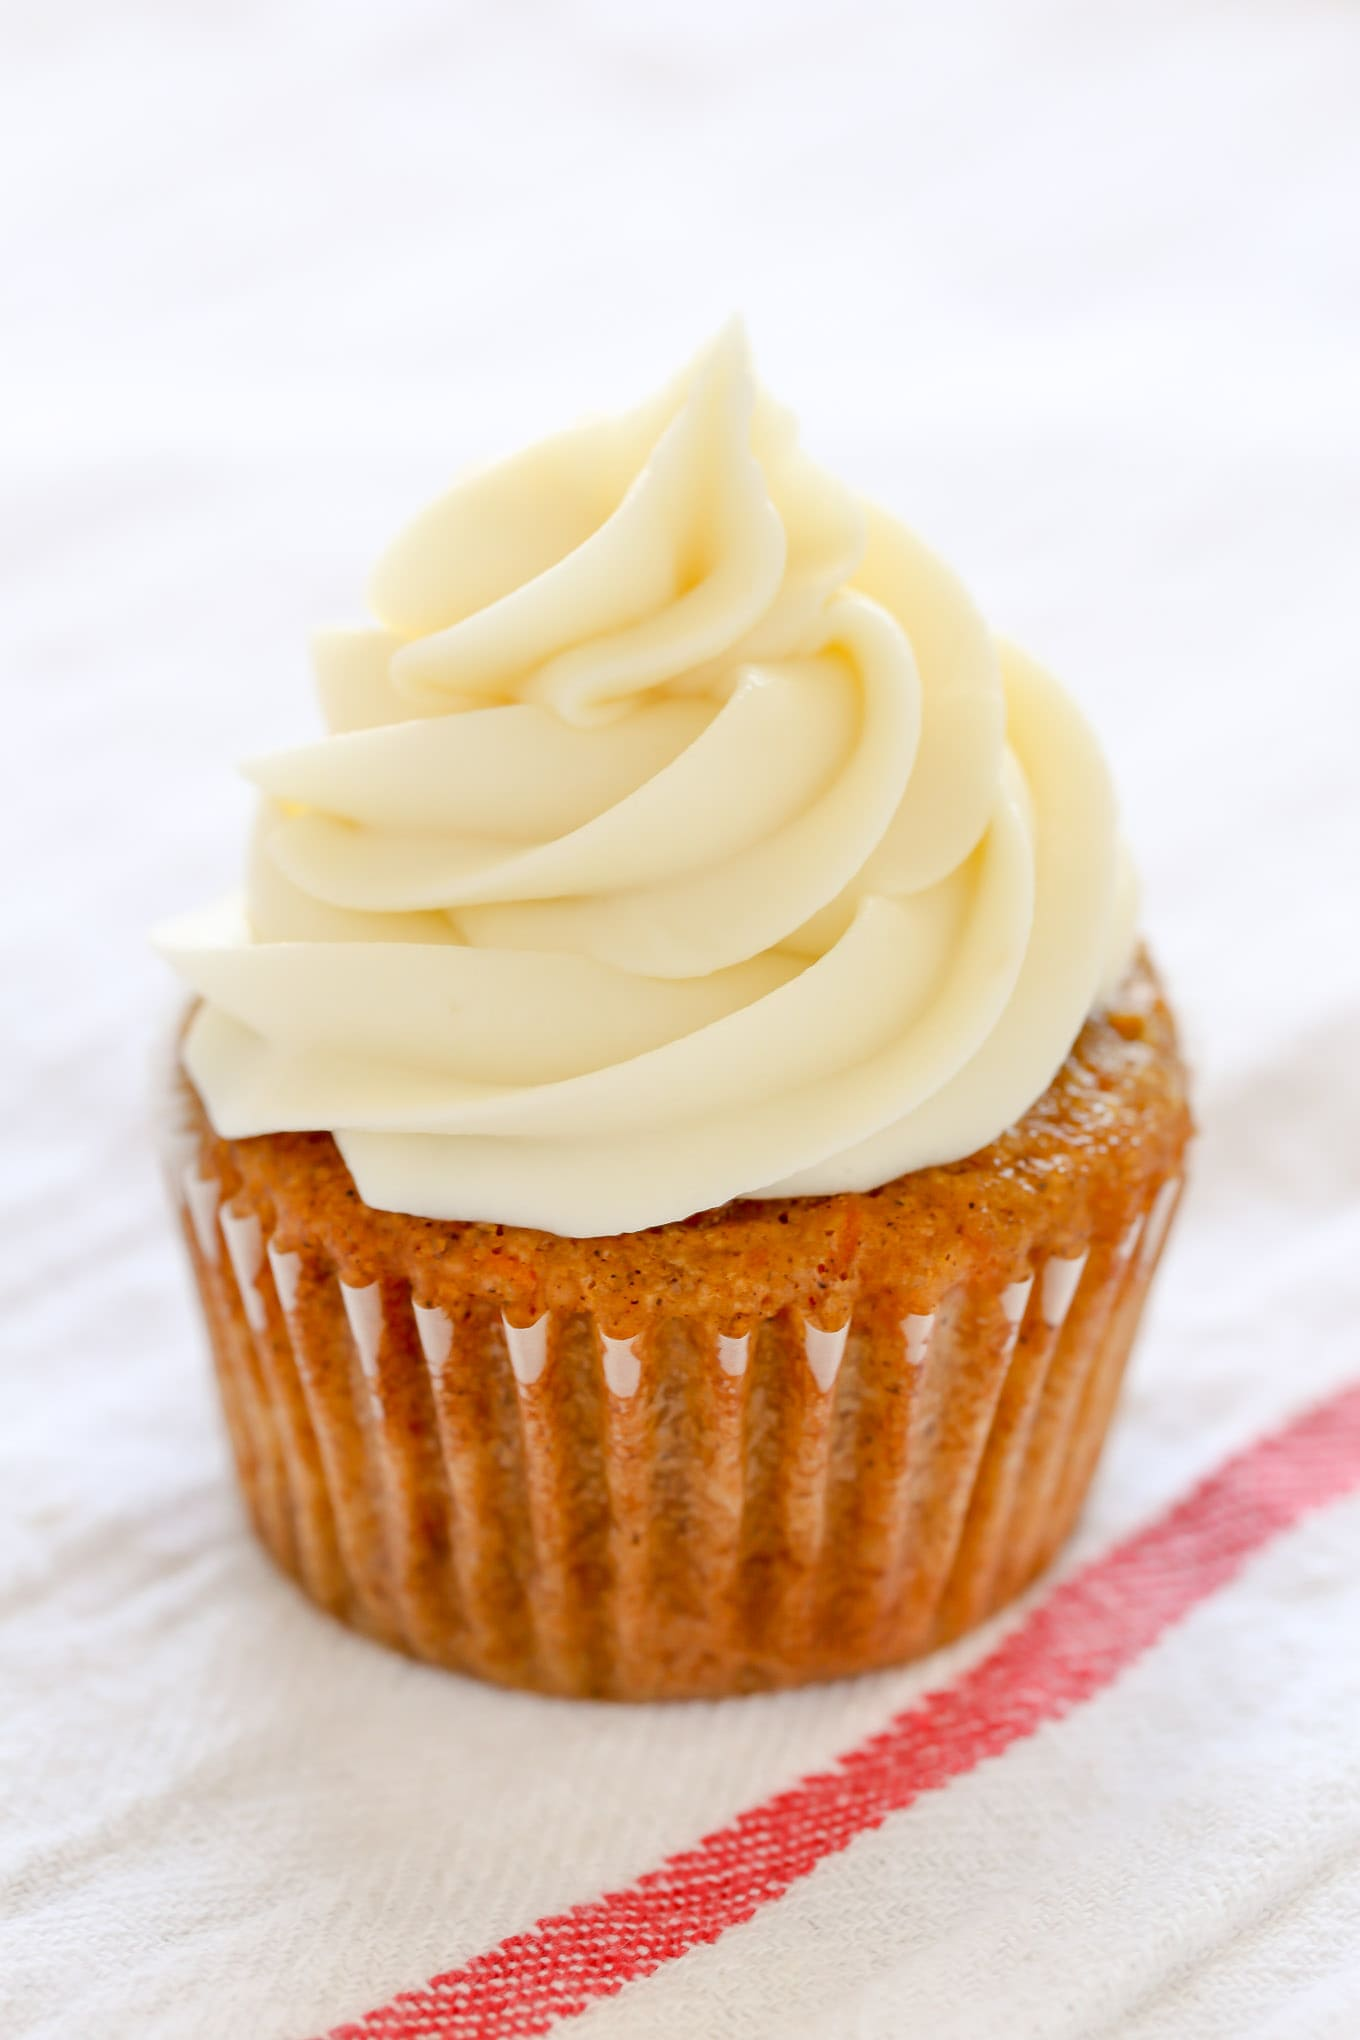 Cream Cheese Frosting - Live Well Bake Often